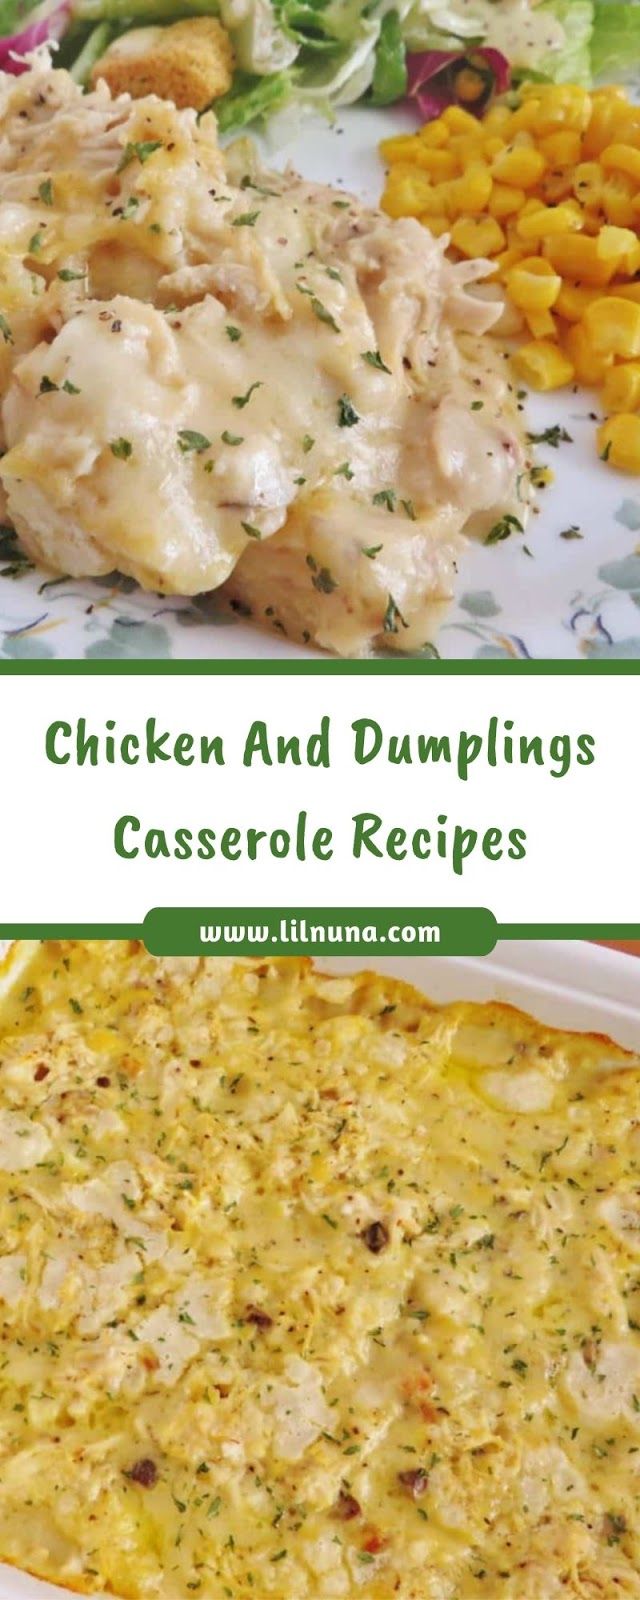 Chicken And Dumplings Casserole Recipes